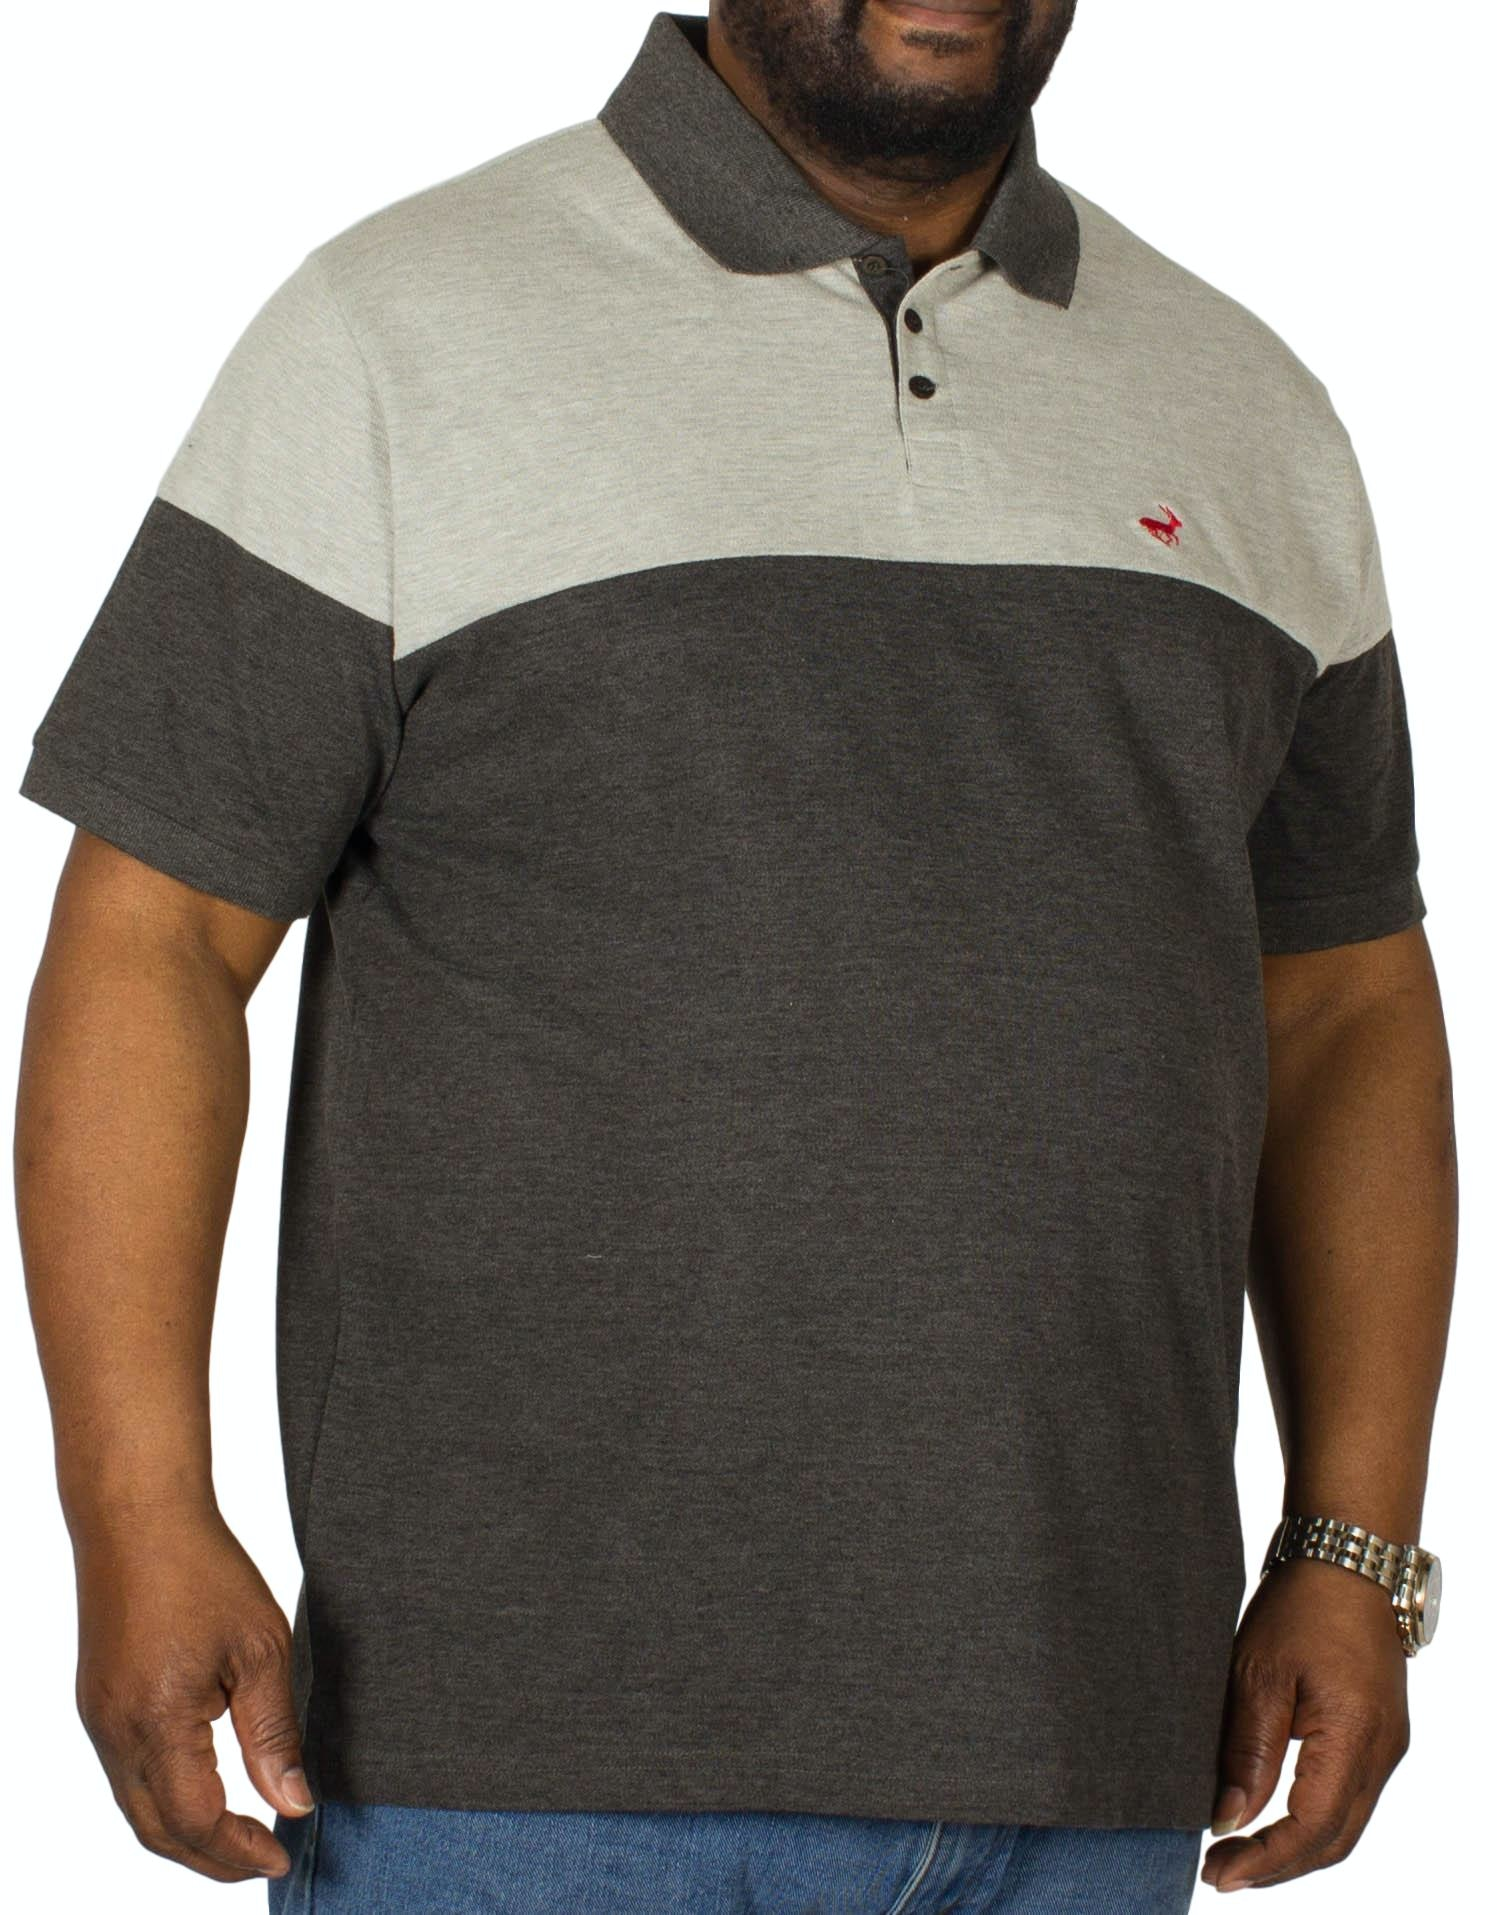 Bigdude Cut & Sew Polo Shirt Grey/Charcoal